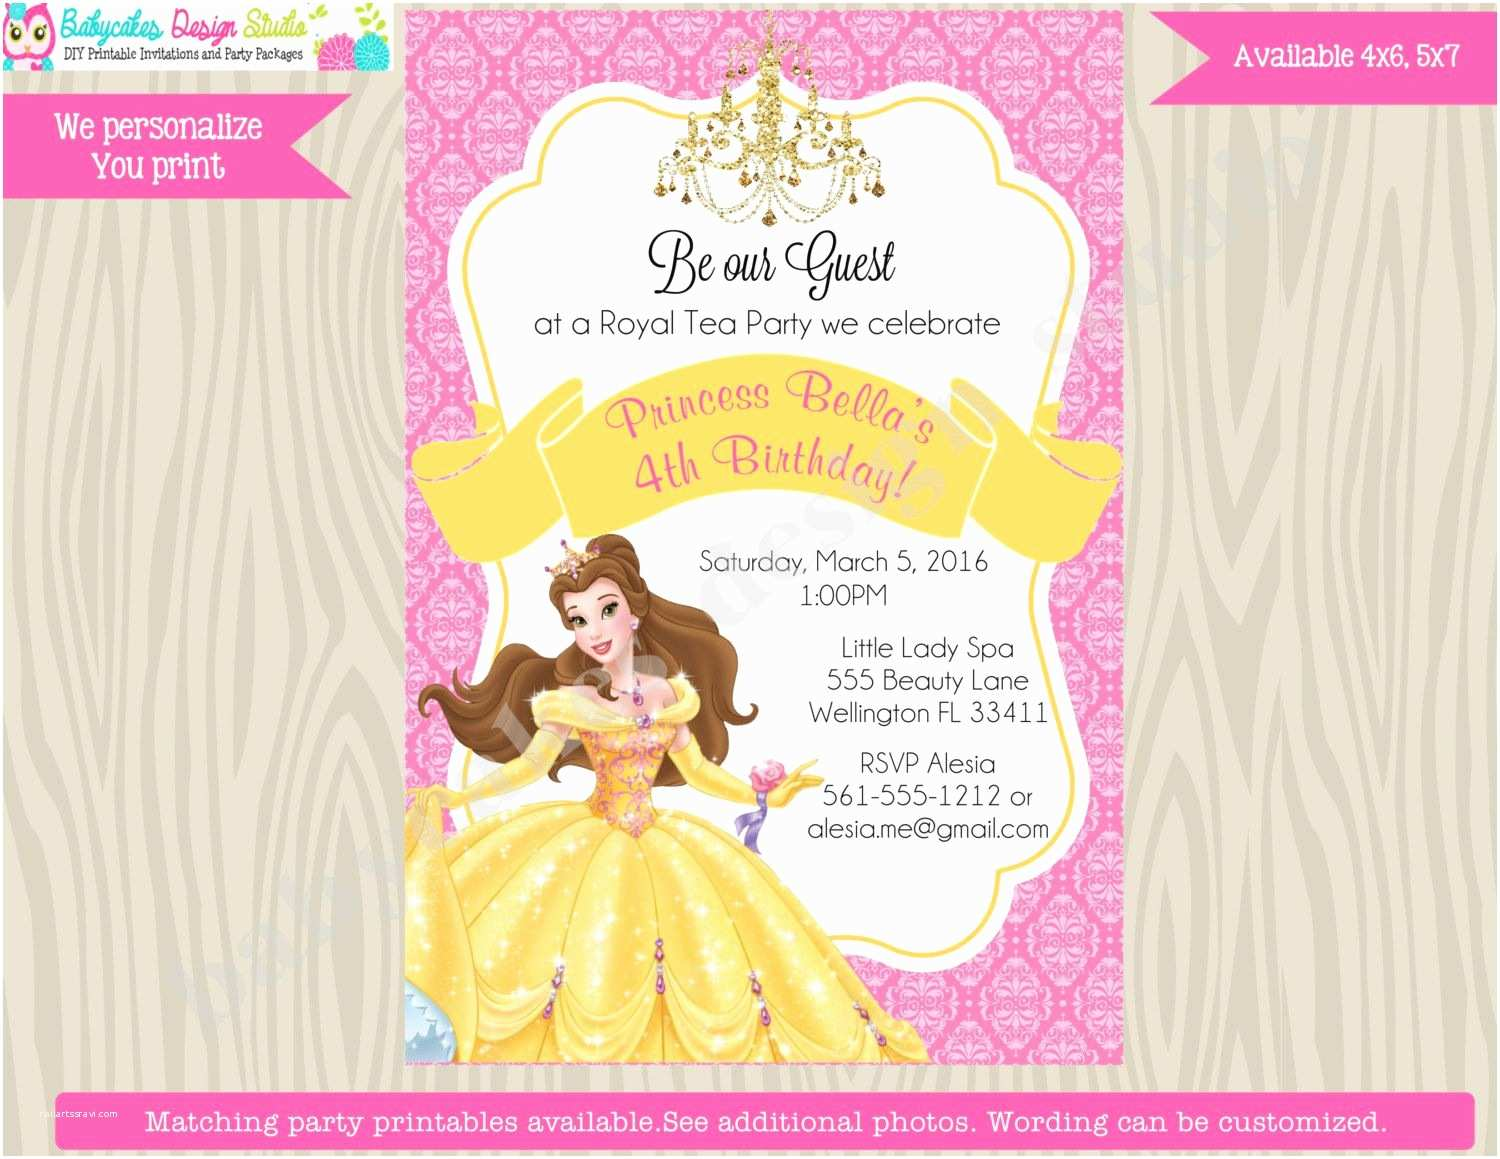 Beauty and the Beast Party Invitations Princess Belle Invitation Invite Belle Birthday Invitation